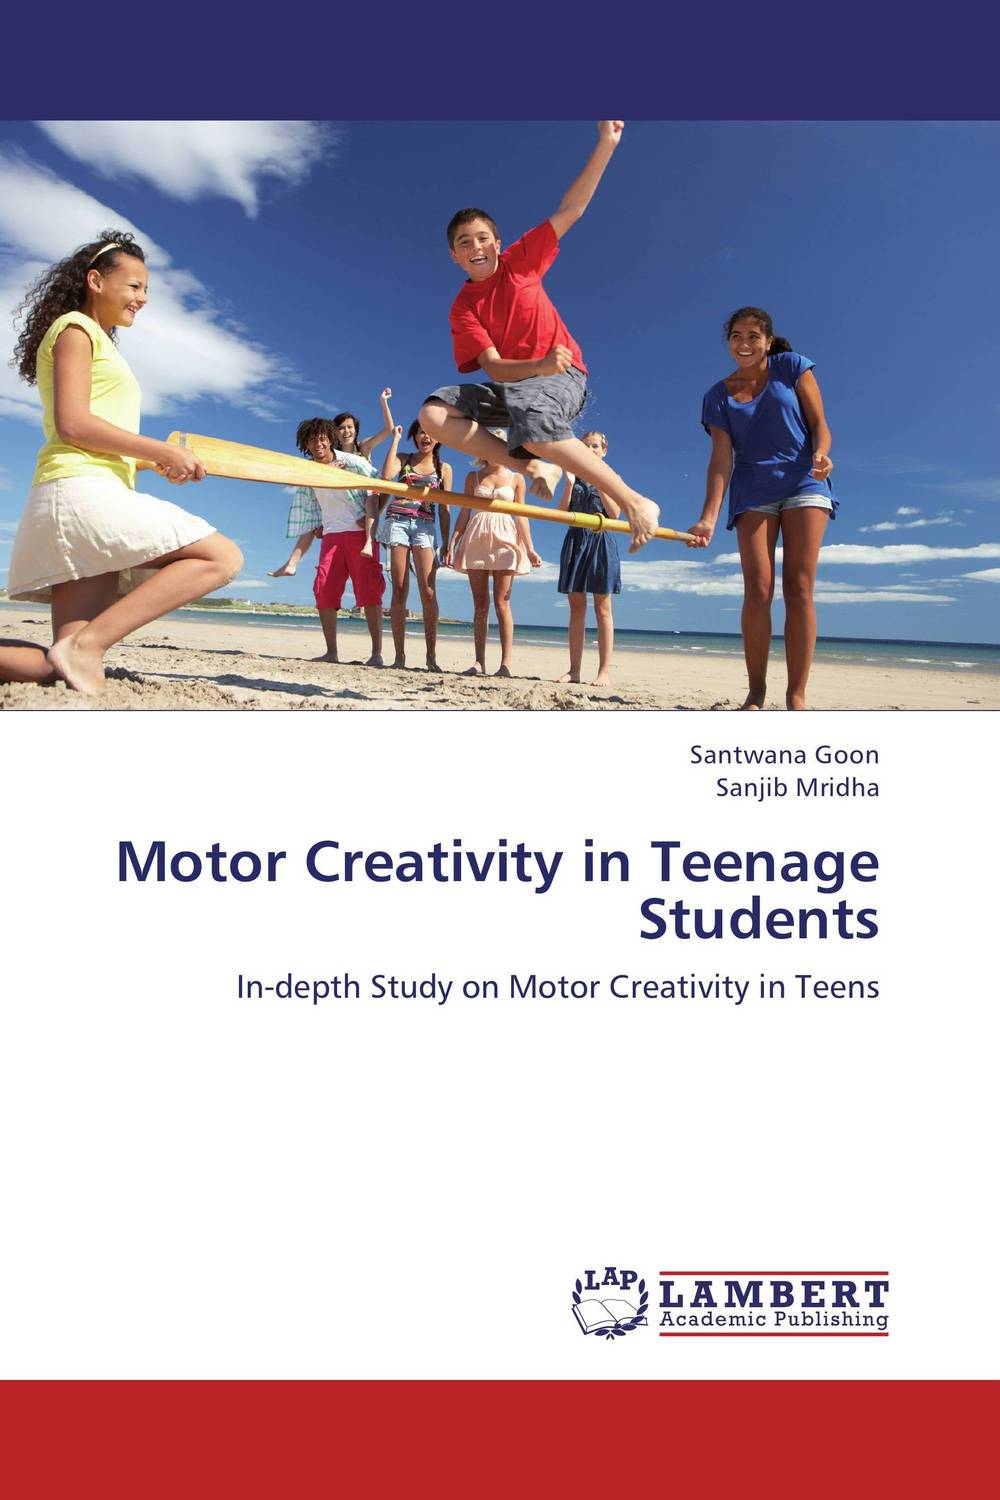 Motor Creativity in Teenage Students